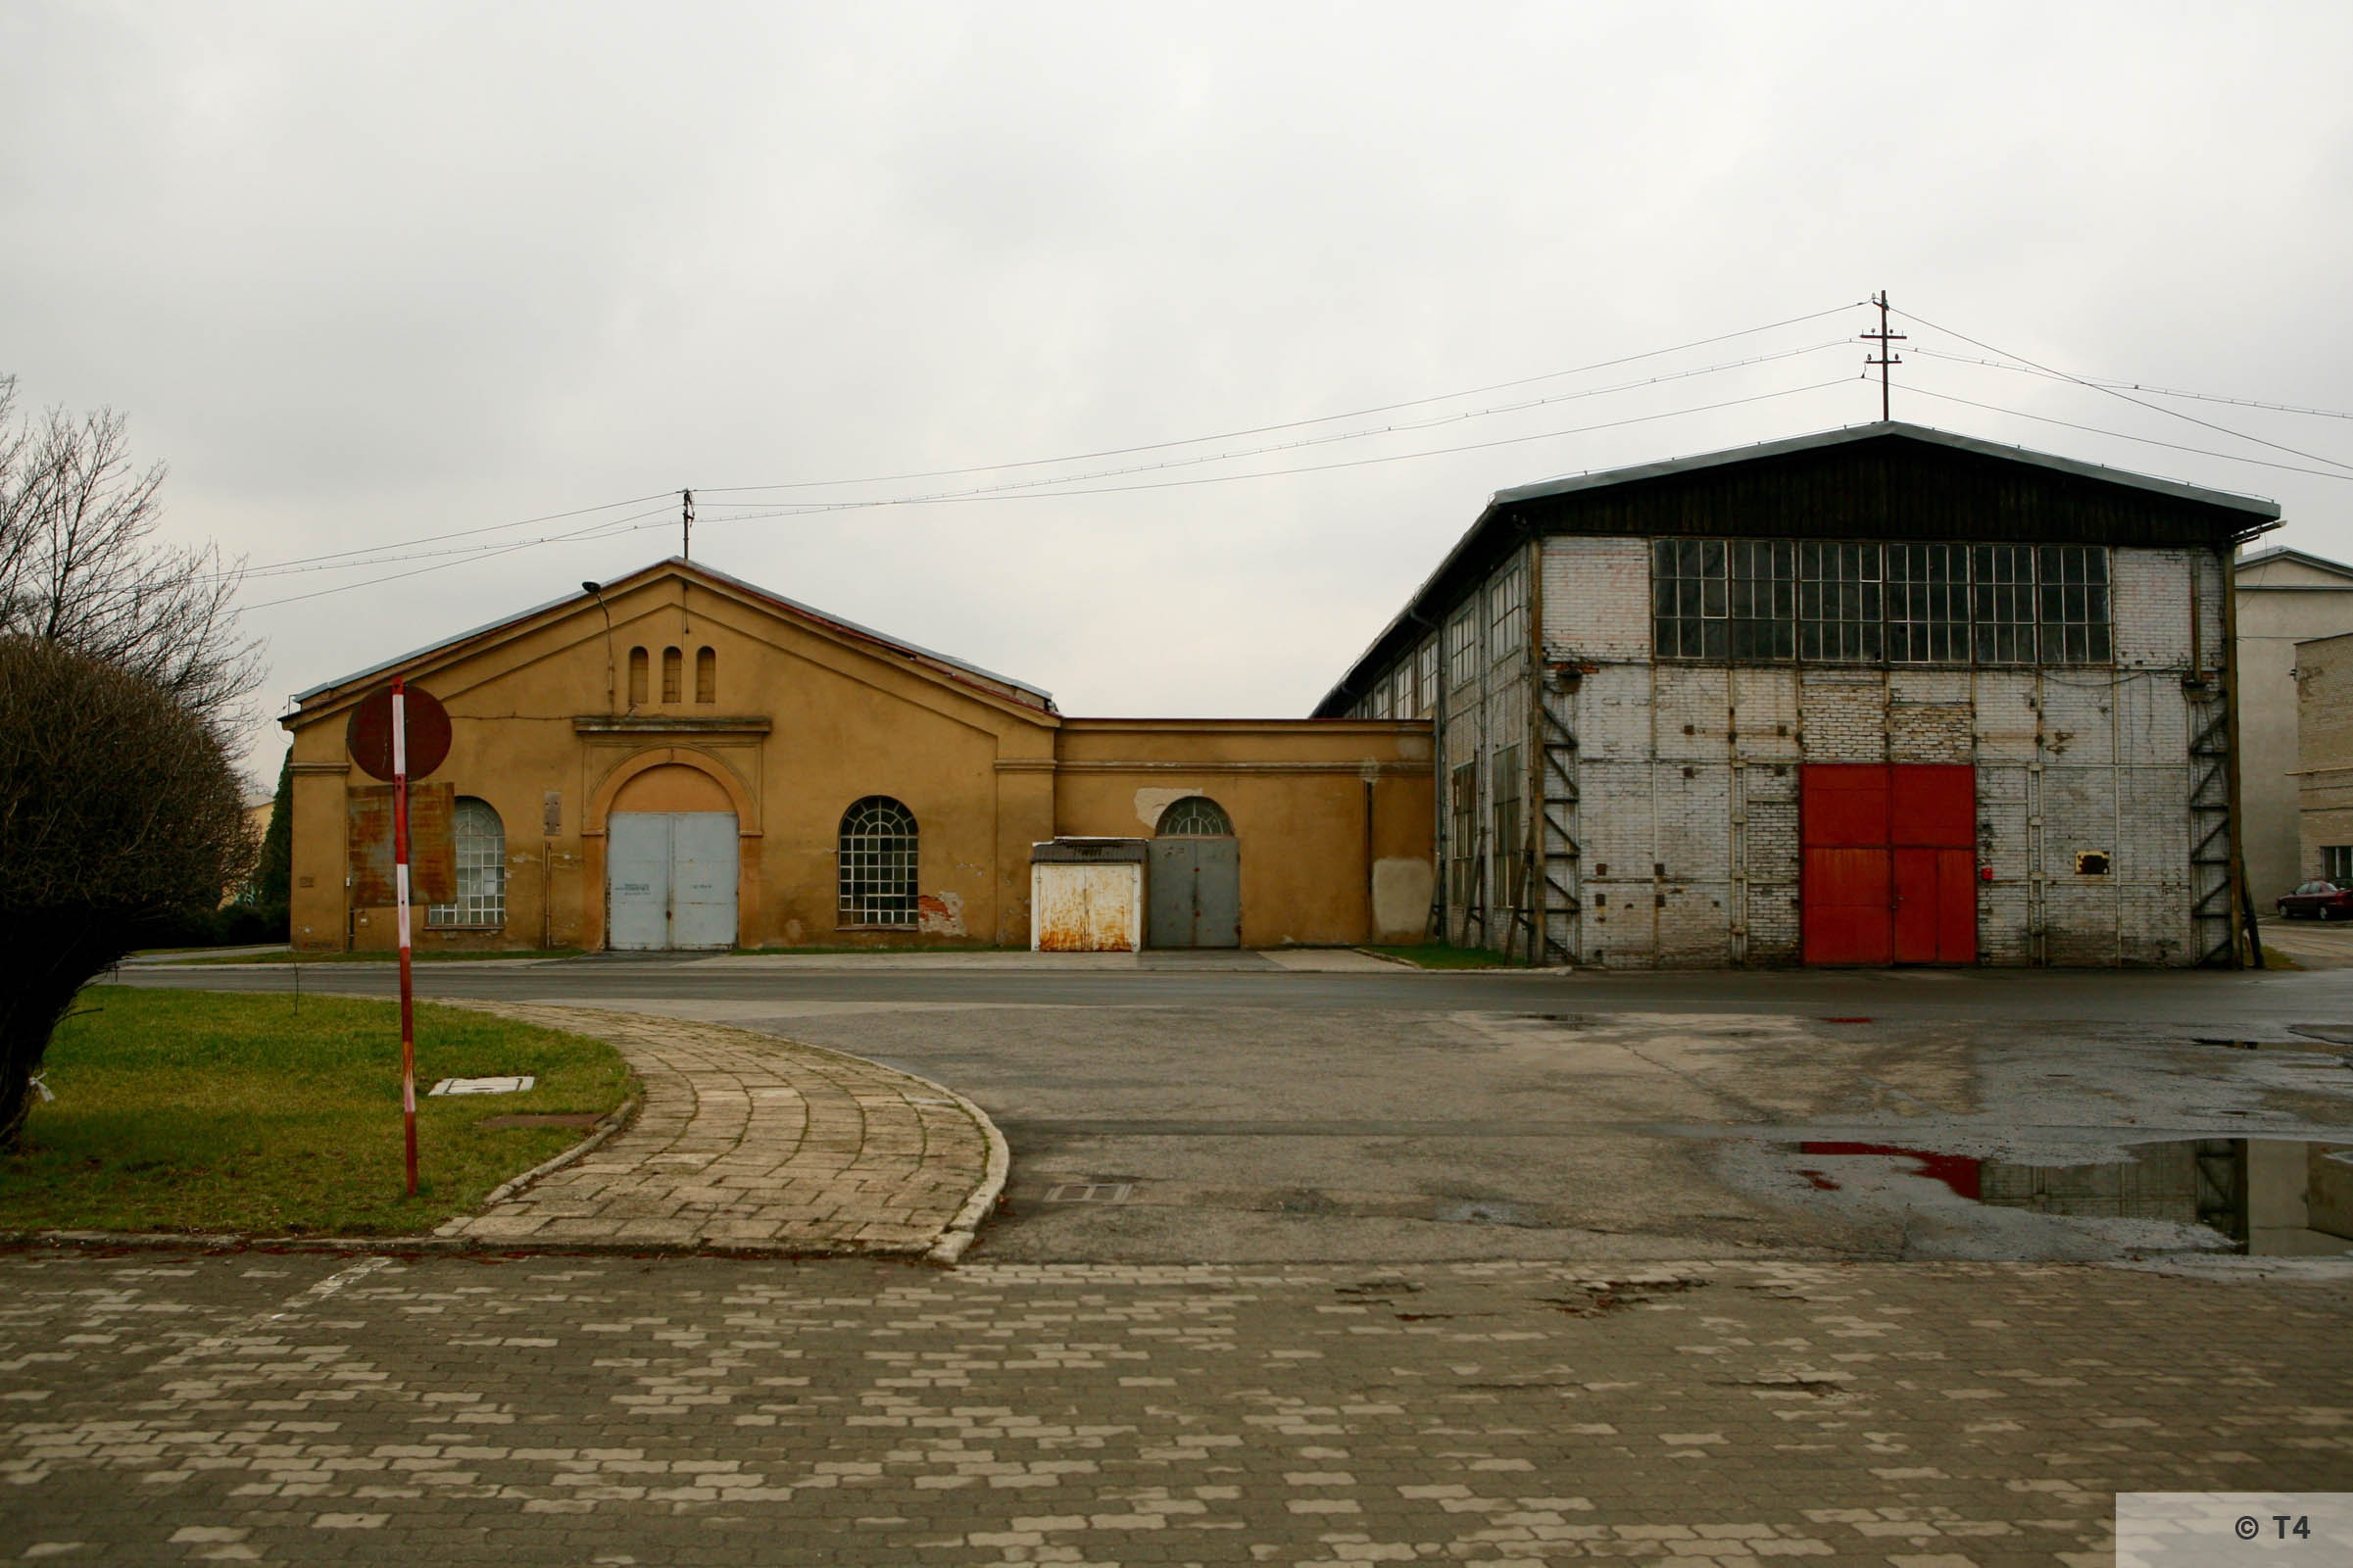 Workshops where prisoners worked. 2007 T4 4846